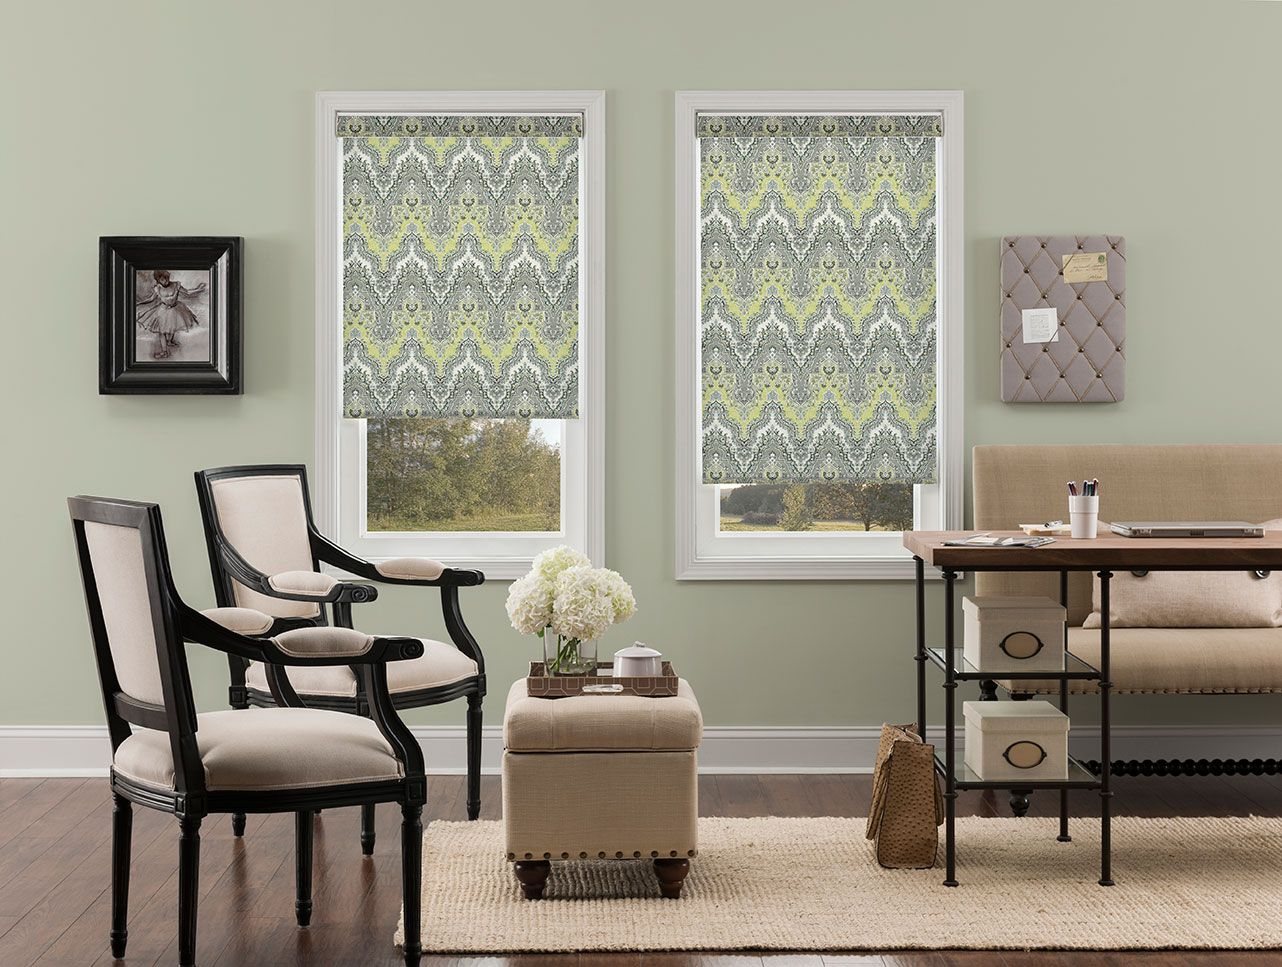 Merveilleux Waverly Palace Sari Light Filtering Fabric Roller Shades In Elephant.  #waverly #waverlyblinds #blinds #rollershades